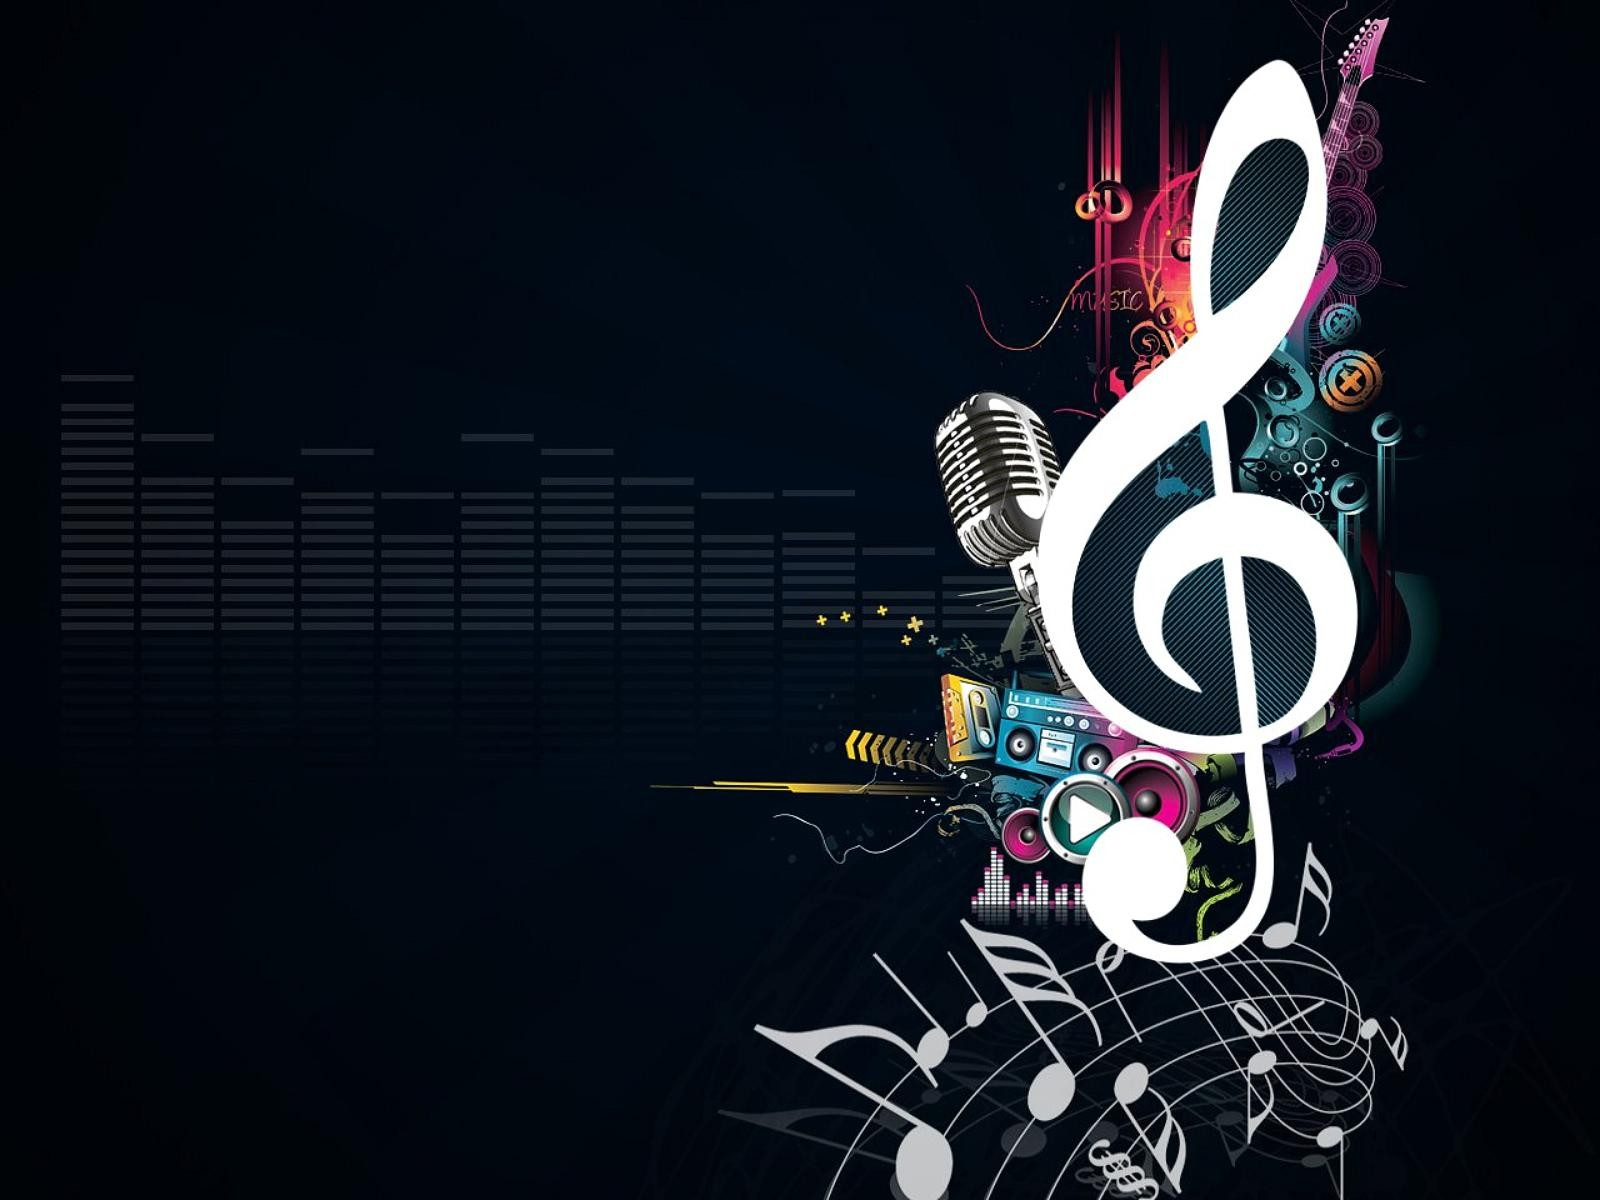 Best Wallpaper Music Anime - music-anime-music-and-japanese-music-35648057-1600-1200  Perfect Image Reference_791521.jpg